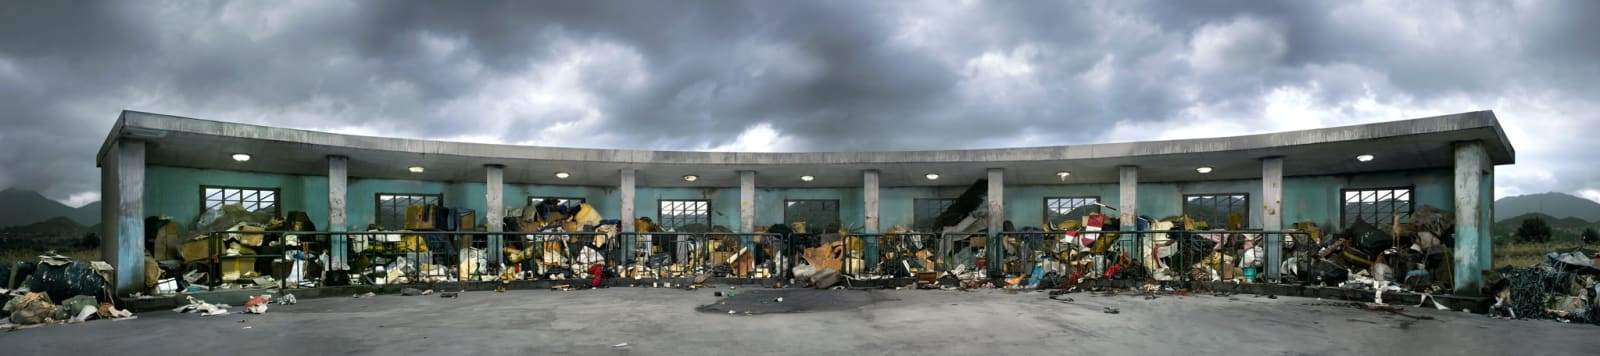 Chen Wei, Anonymous Station - Suppressed Scenery, 2007